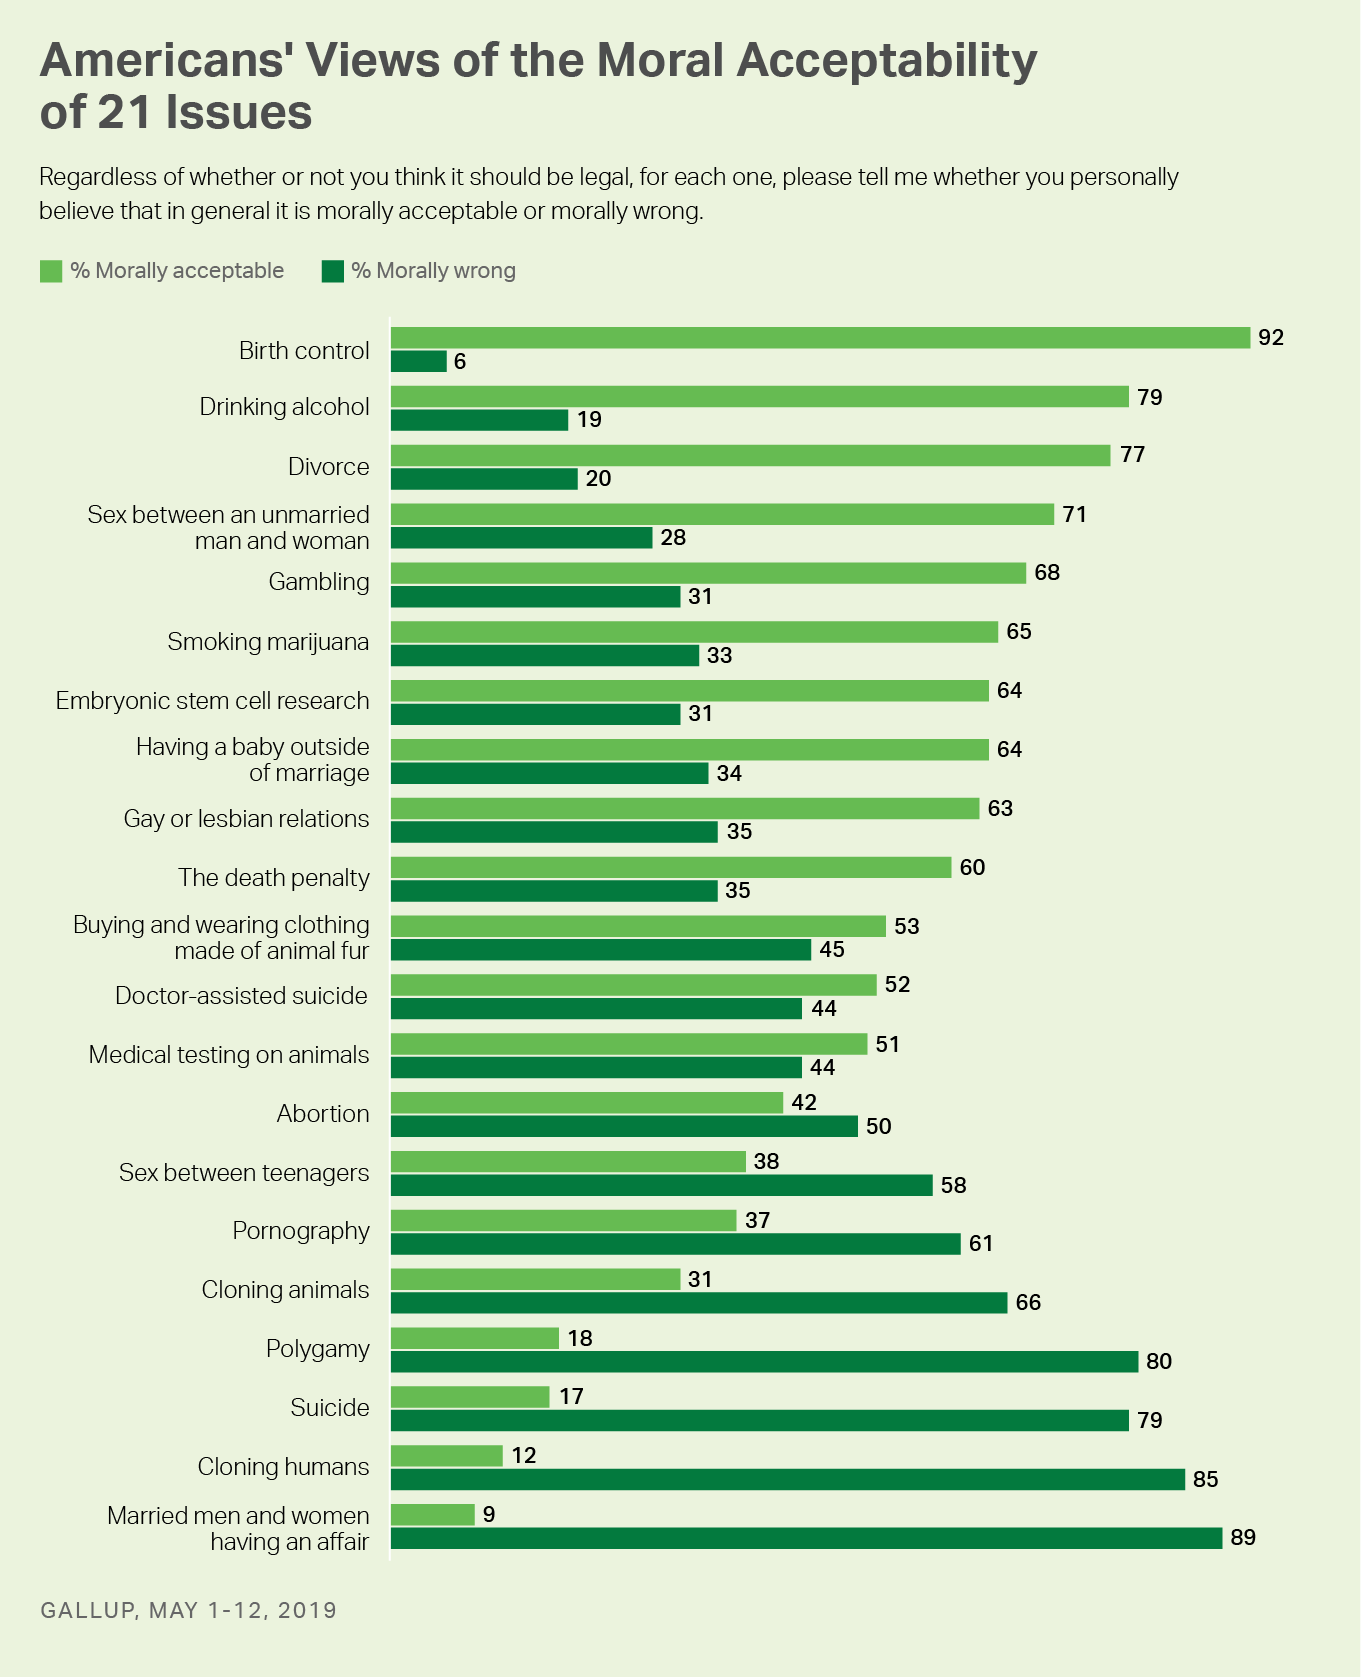 Americans' views of the moral acceptability of 21 issues. Birth control tops the list, with 92% saying it's acceptable.